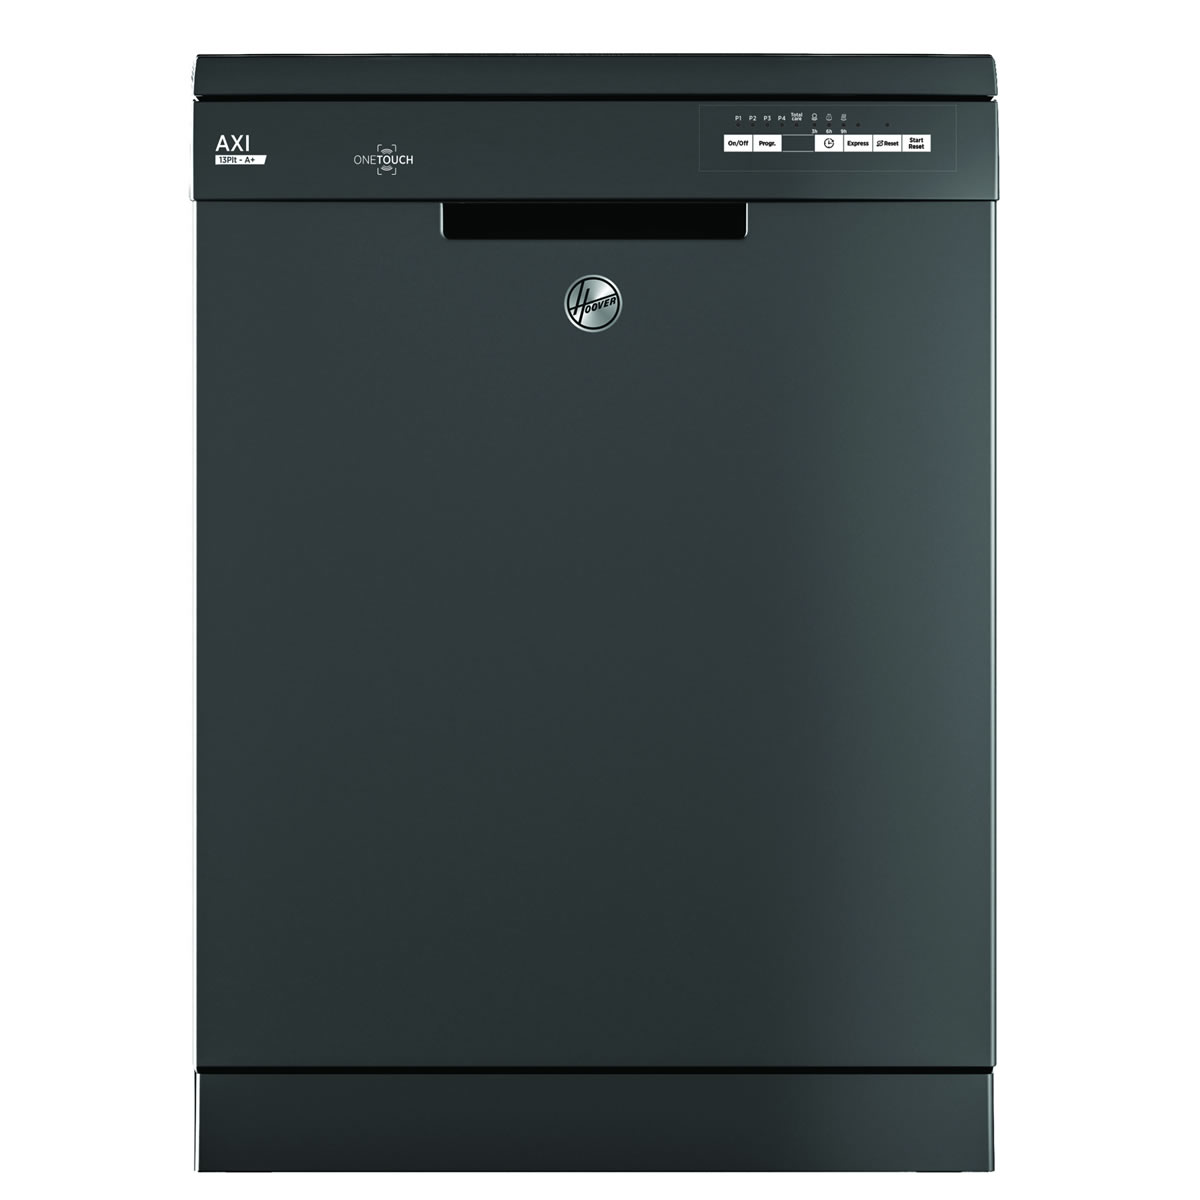 13-Place Dishwasher 5 Progs Class A+ One Touch Graphite